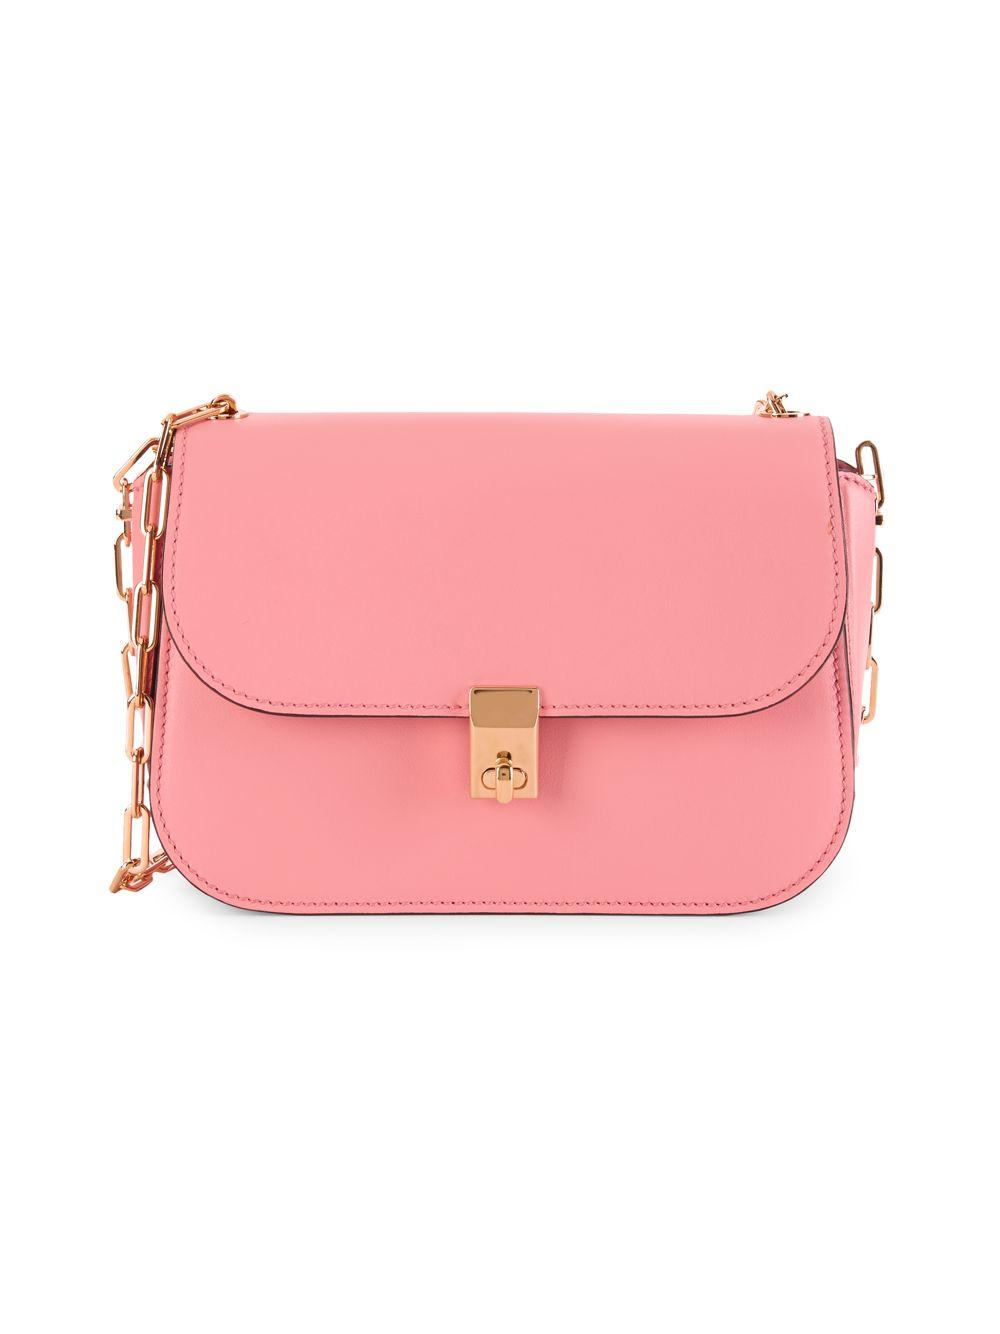 a09ad192685 Valentino Chain Strap Leather Crossbody Bag in Pink - Lyst